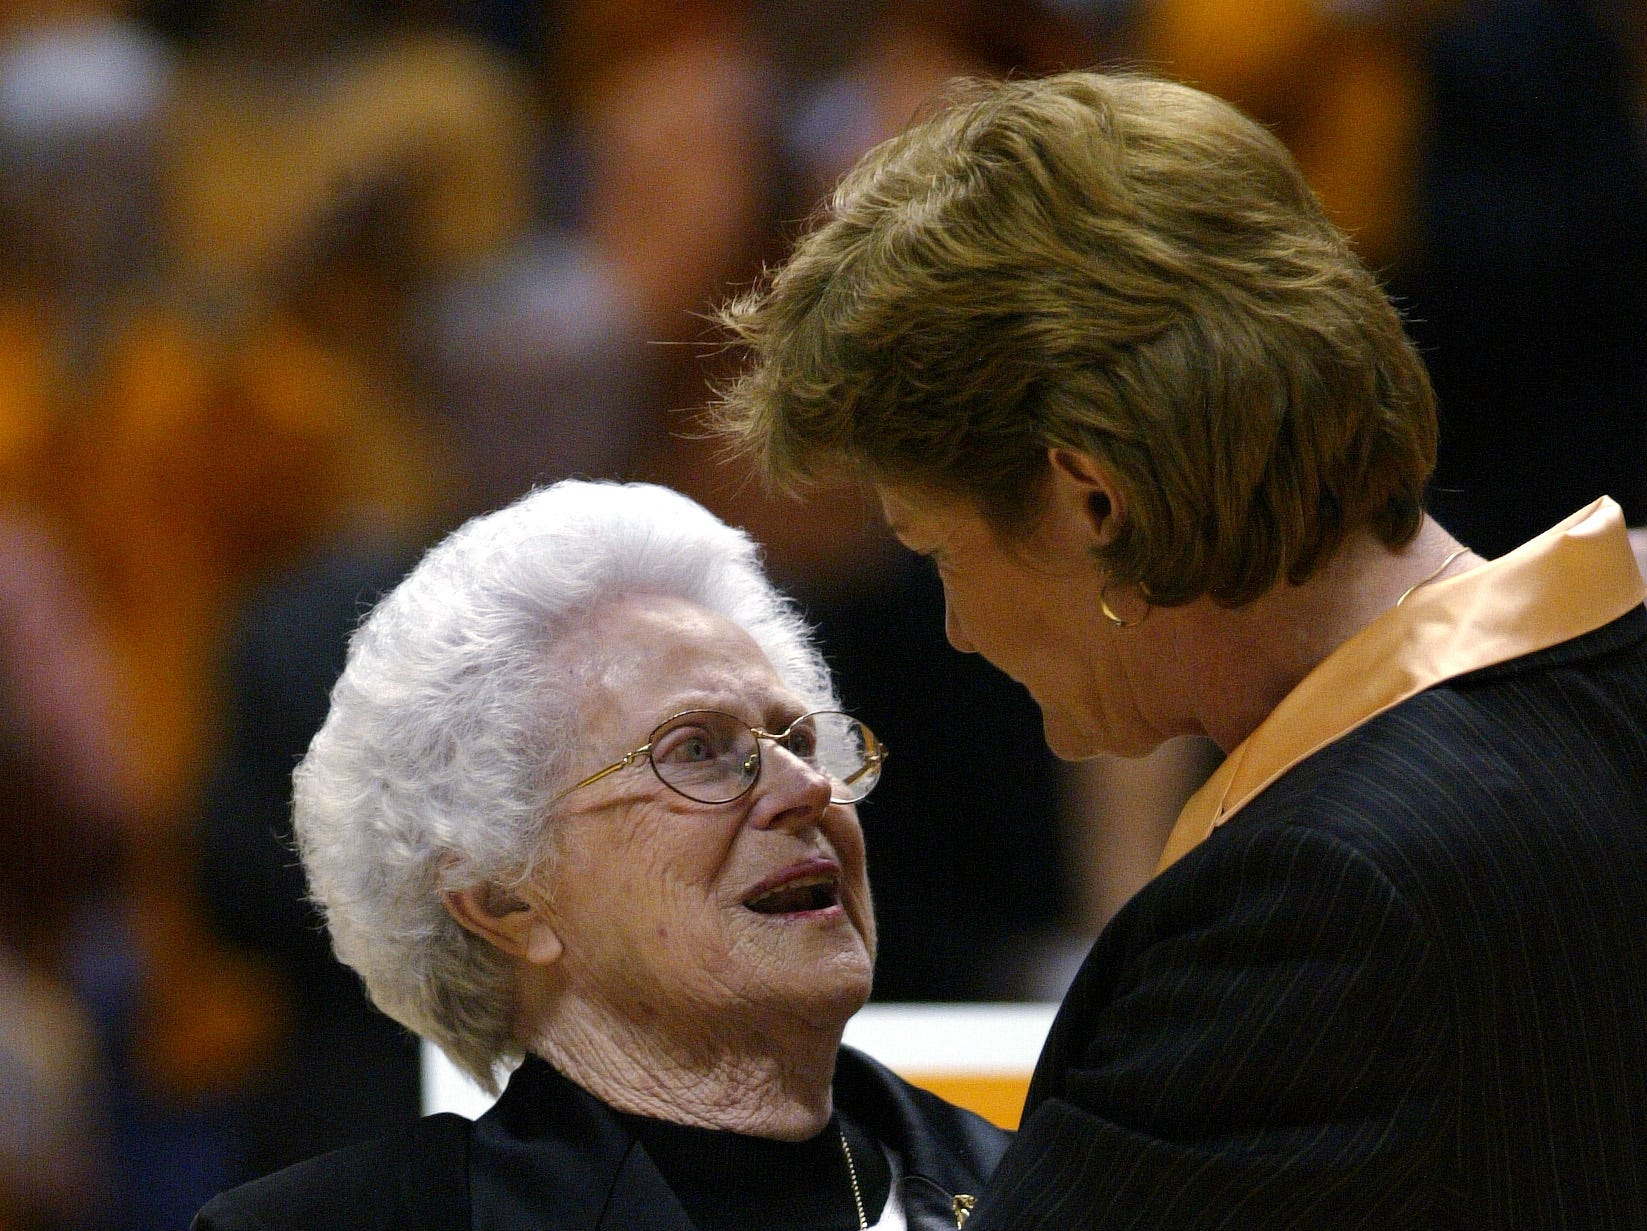 In this 2005 photo, Pat Summitt  hugs her mother during an award presentation after summitt won her  880 game.